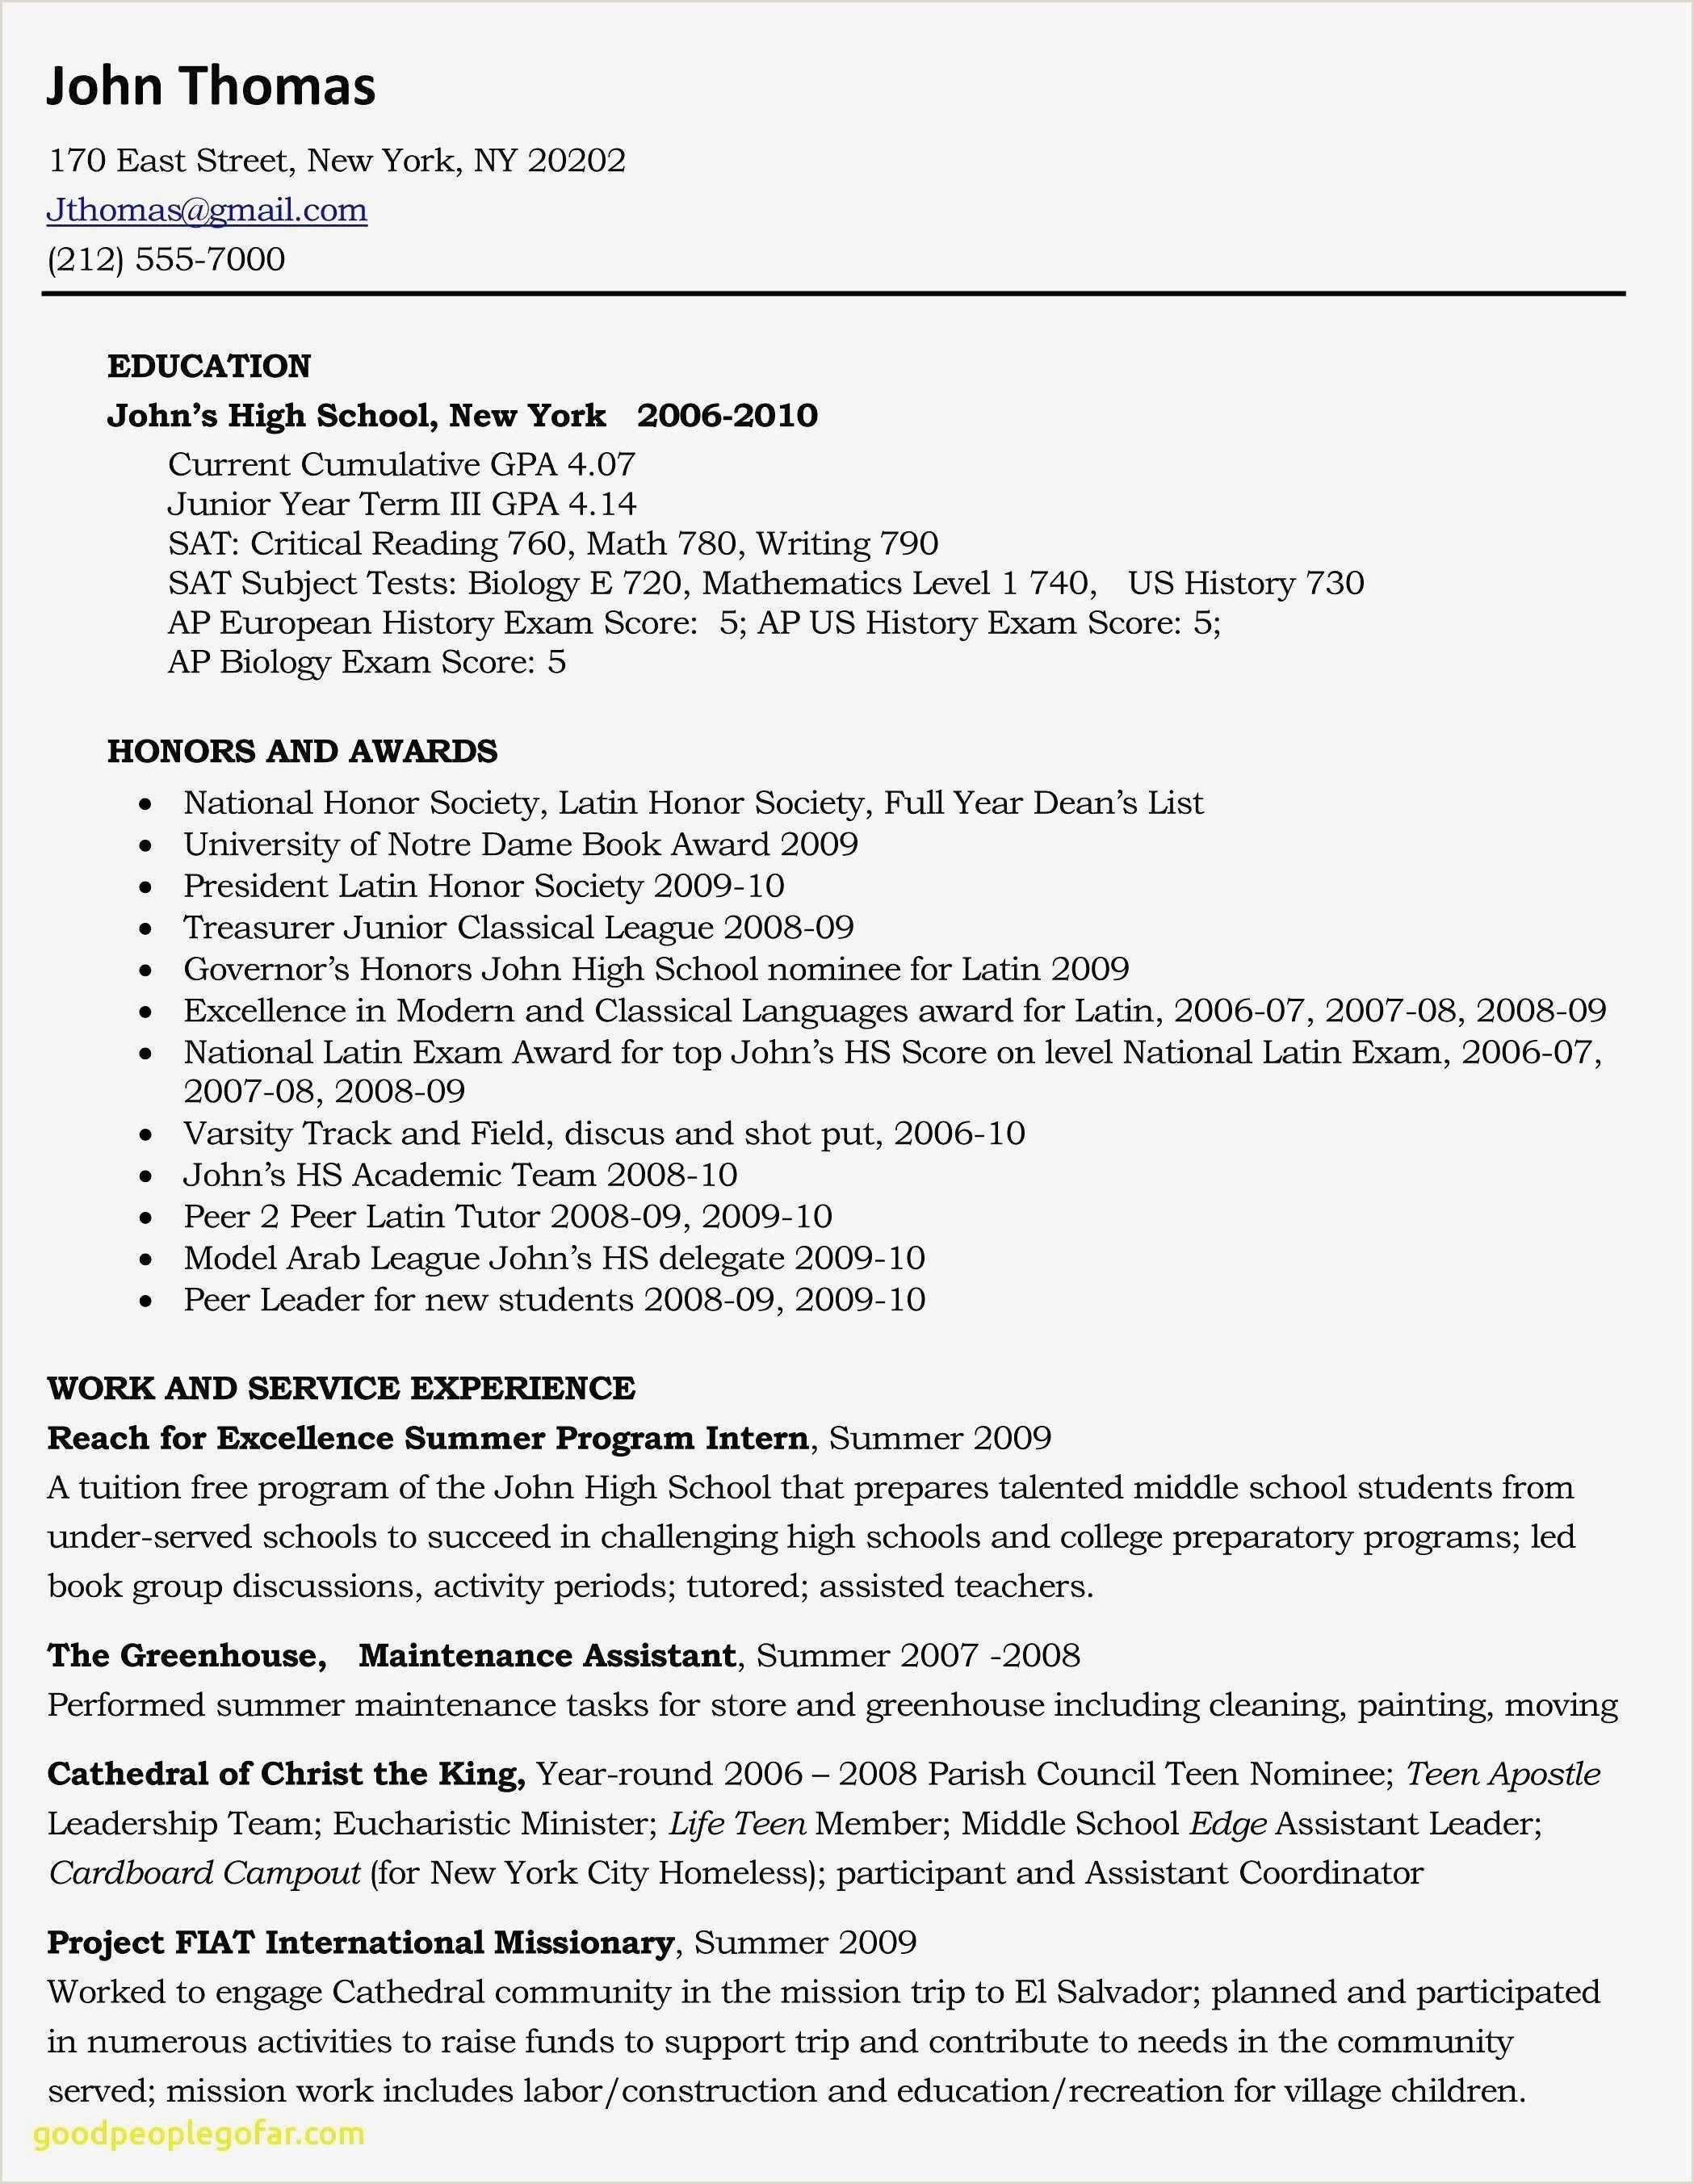 Child Care Responsibilities for Resume Modele De Cv Batiment Gratuit Agréable Fresh Blank Resume